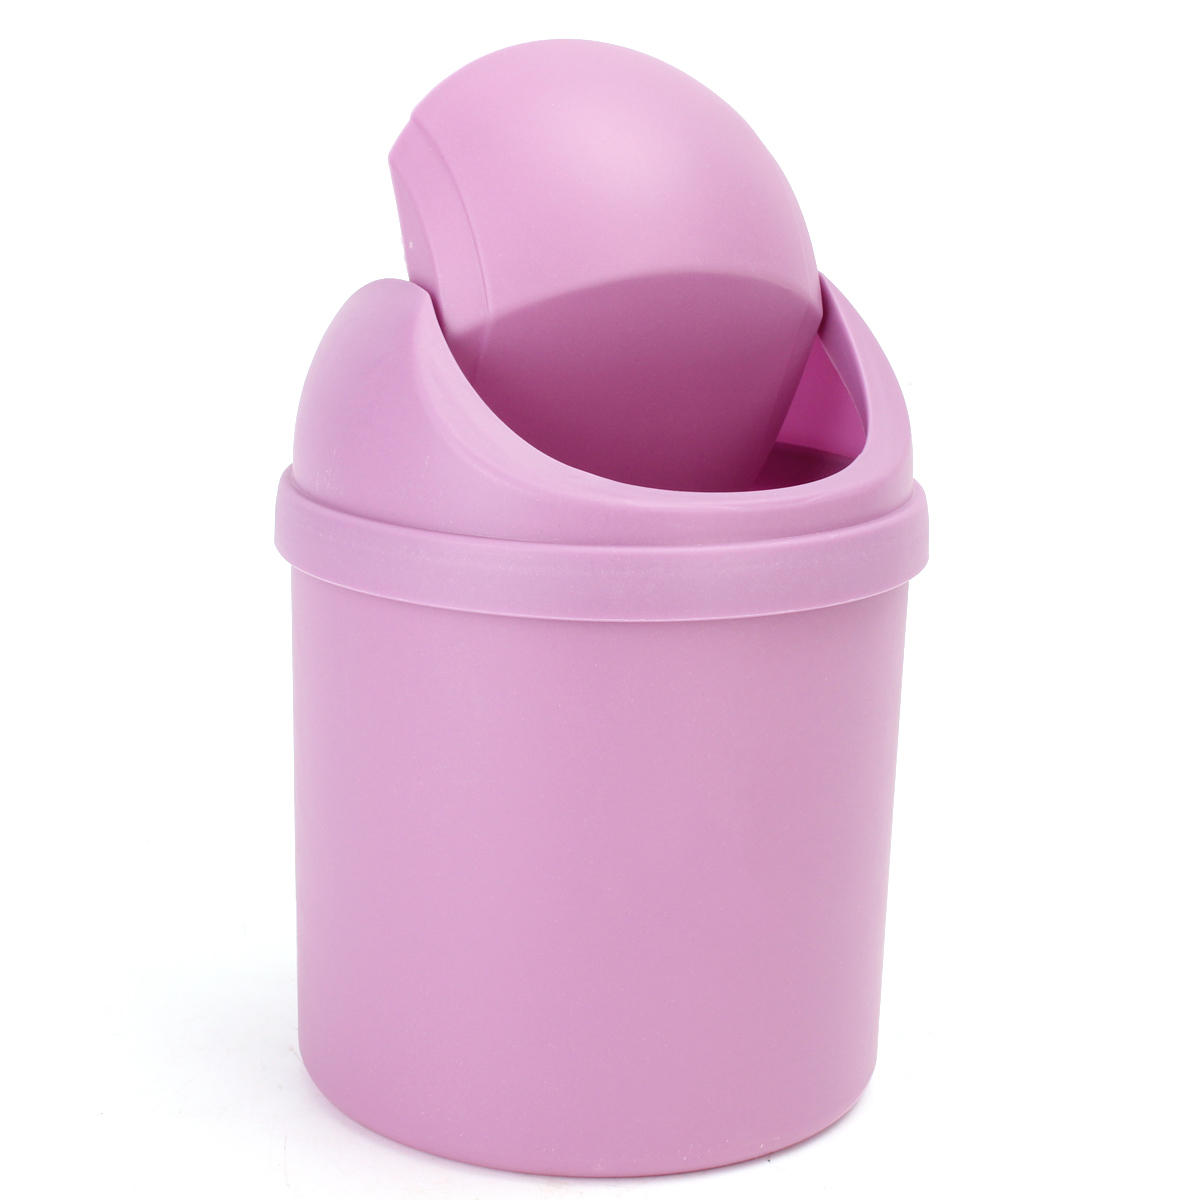 1.5 L // 0.40 Gal Come with Trash Bag Pink Countertop Brushed Stainless Steel Swing Lid Table Desk Car Mini Trash Can Trash Bin Set 5 Color Options